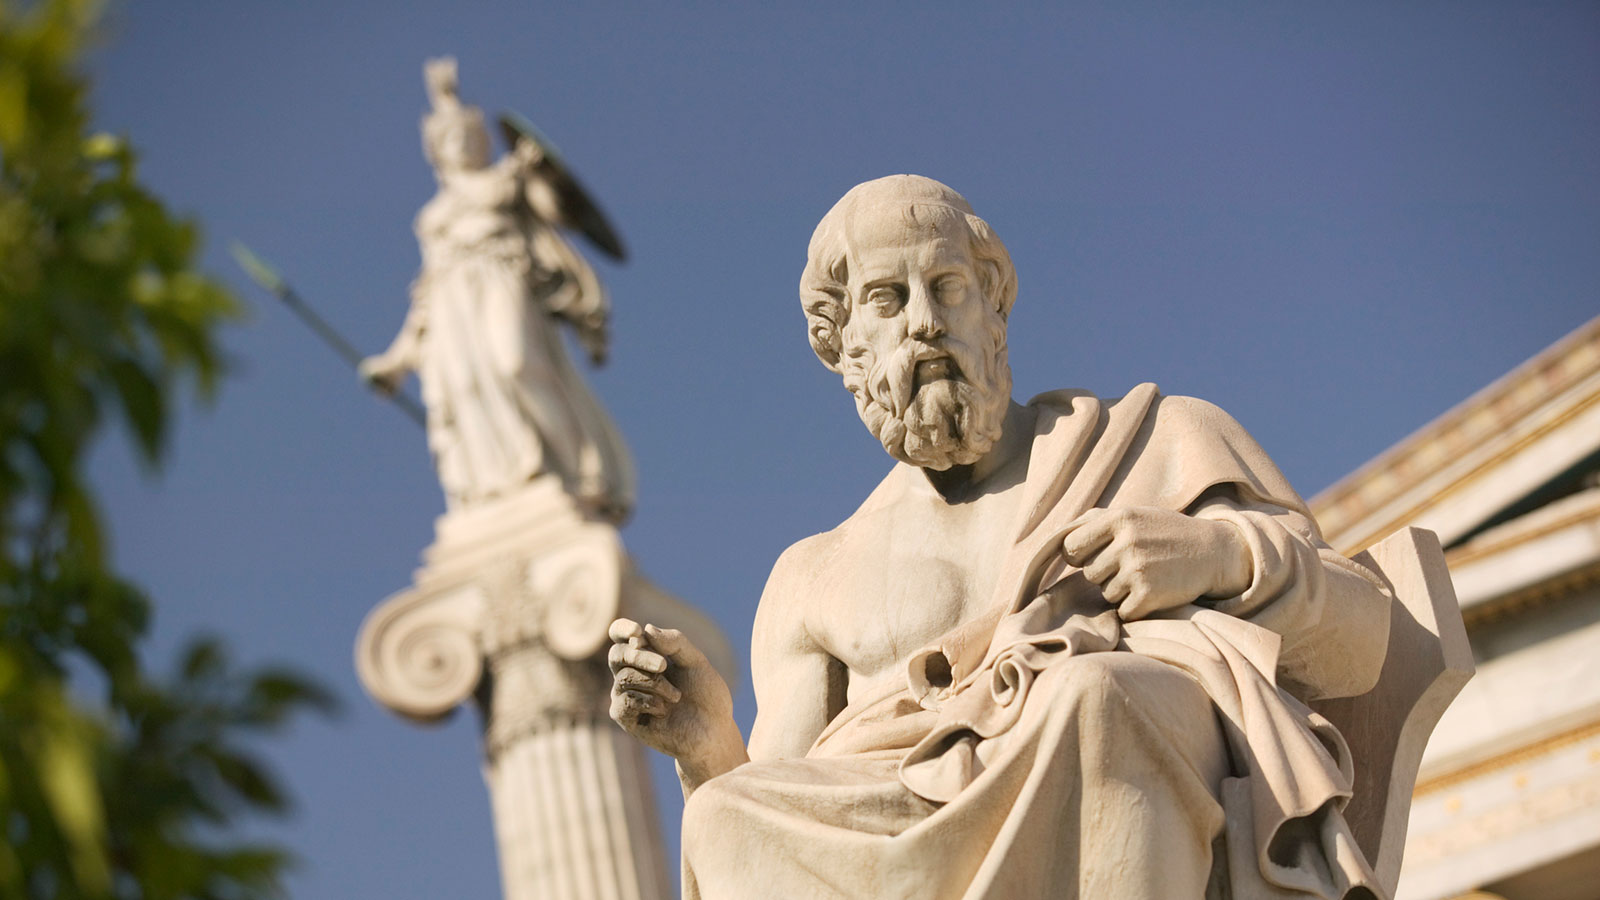 Why Are We Still Talking About Plato 2,100 Years Later? | HowStuffWorks